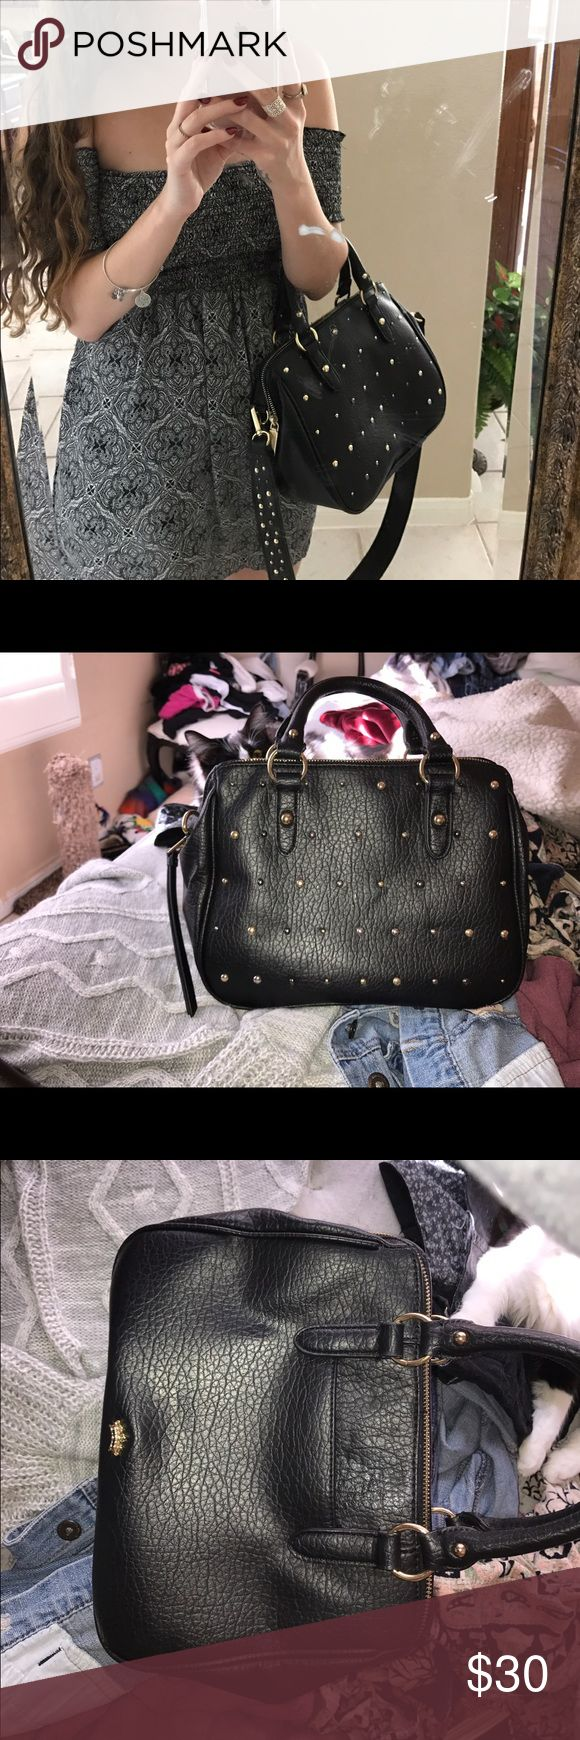 SALE!black leather studded juicy couture purse Black multicolored studs crossbody leather feel. New condition very cute juicy couture bag. Blue interior Bags